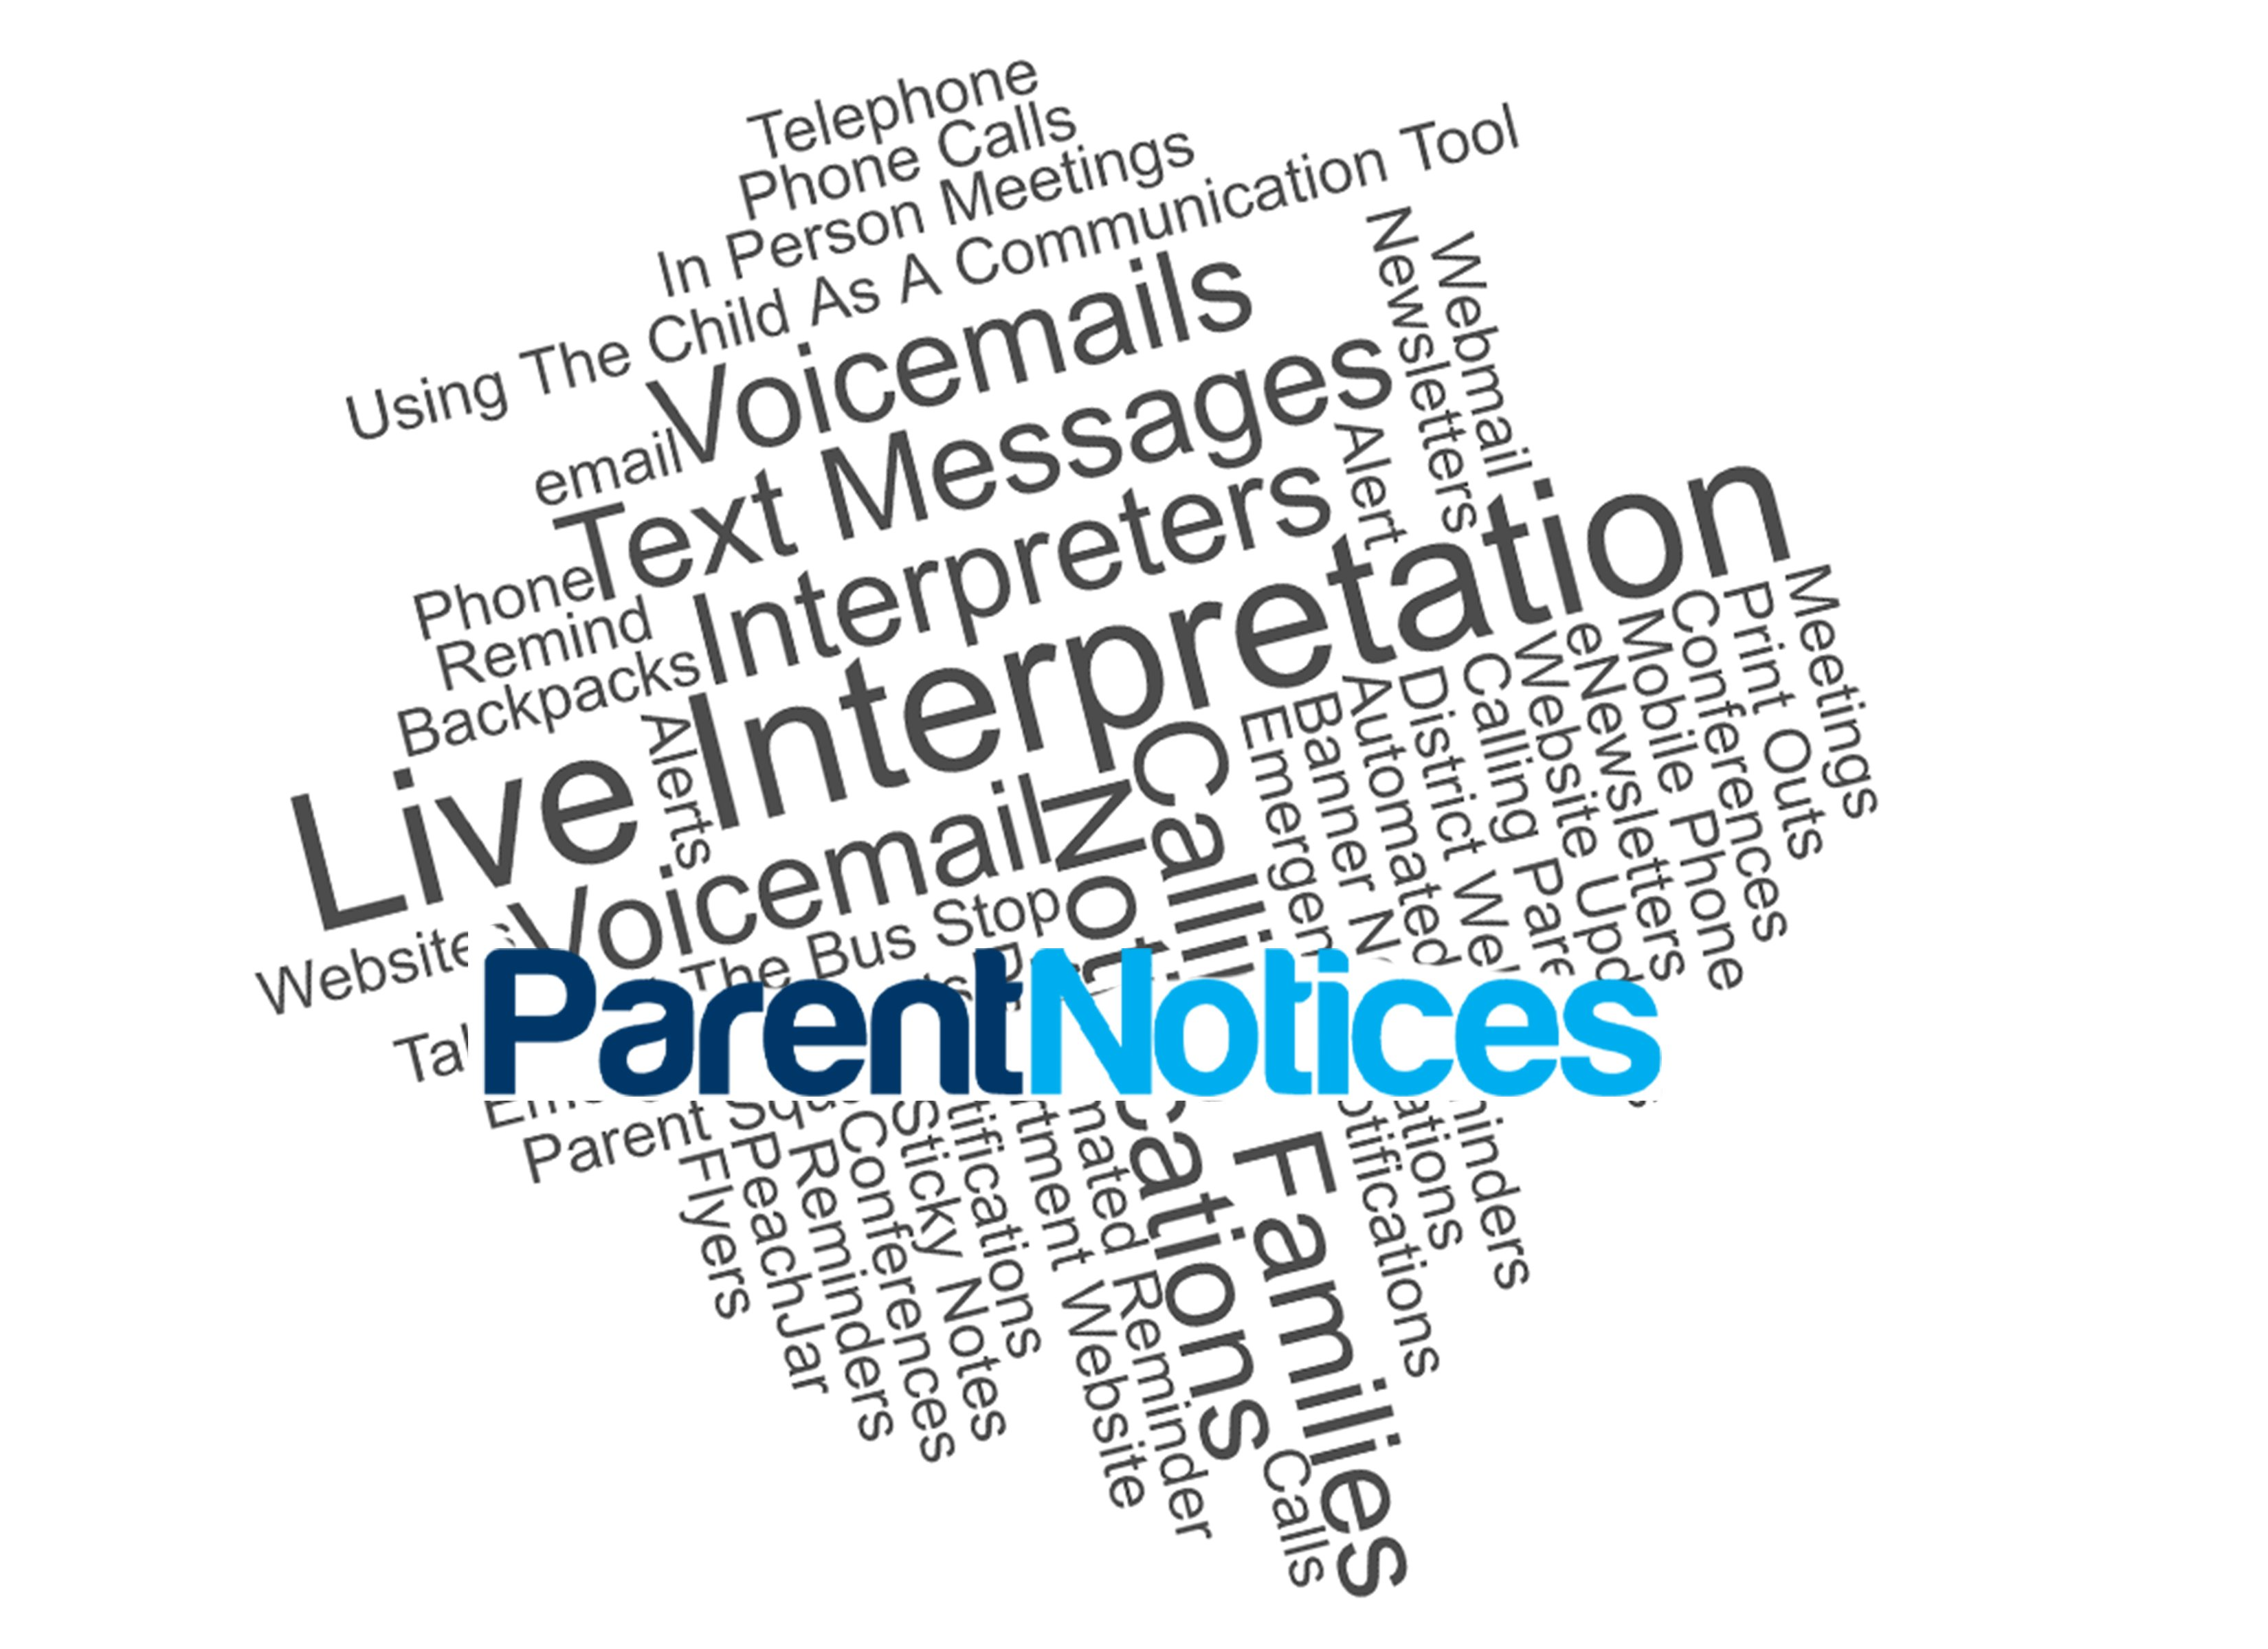 Word Cloud Image@3x UPDATED